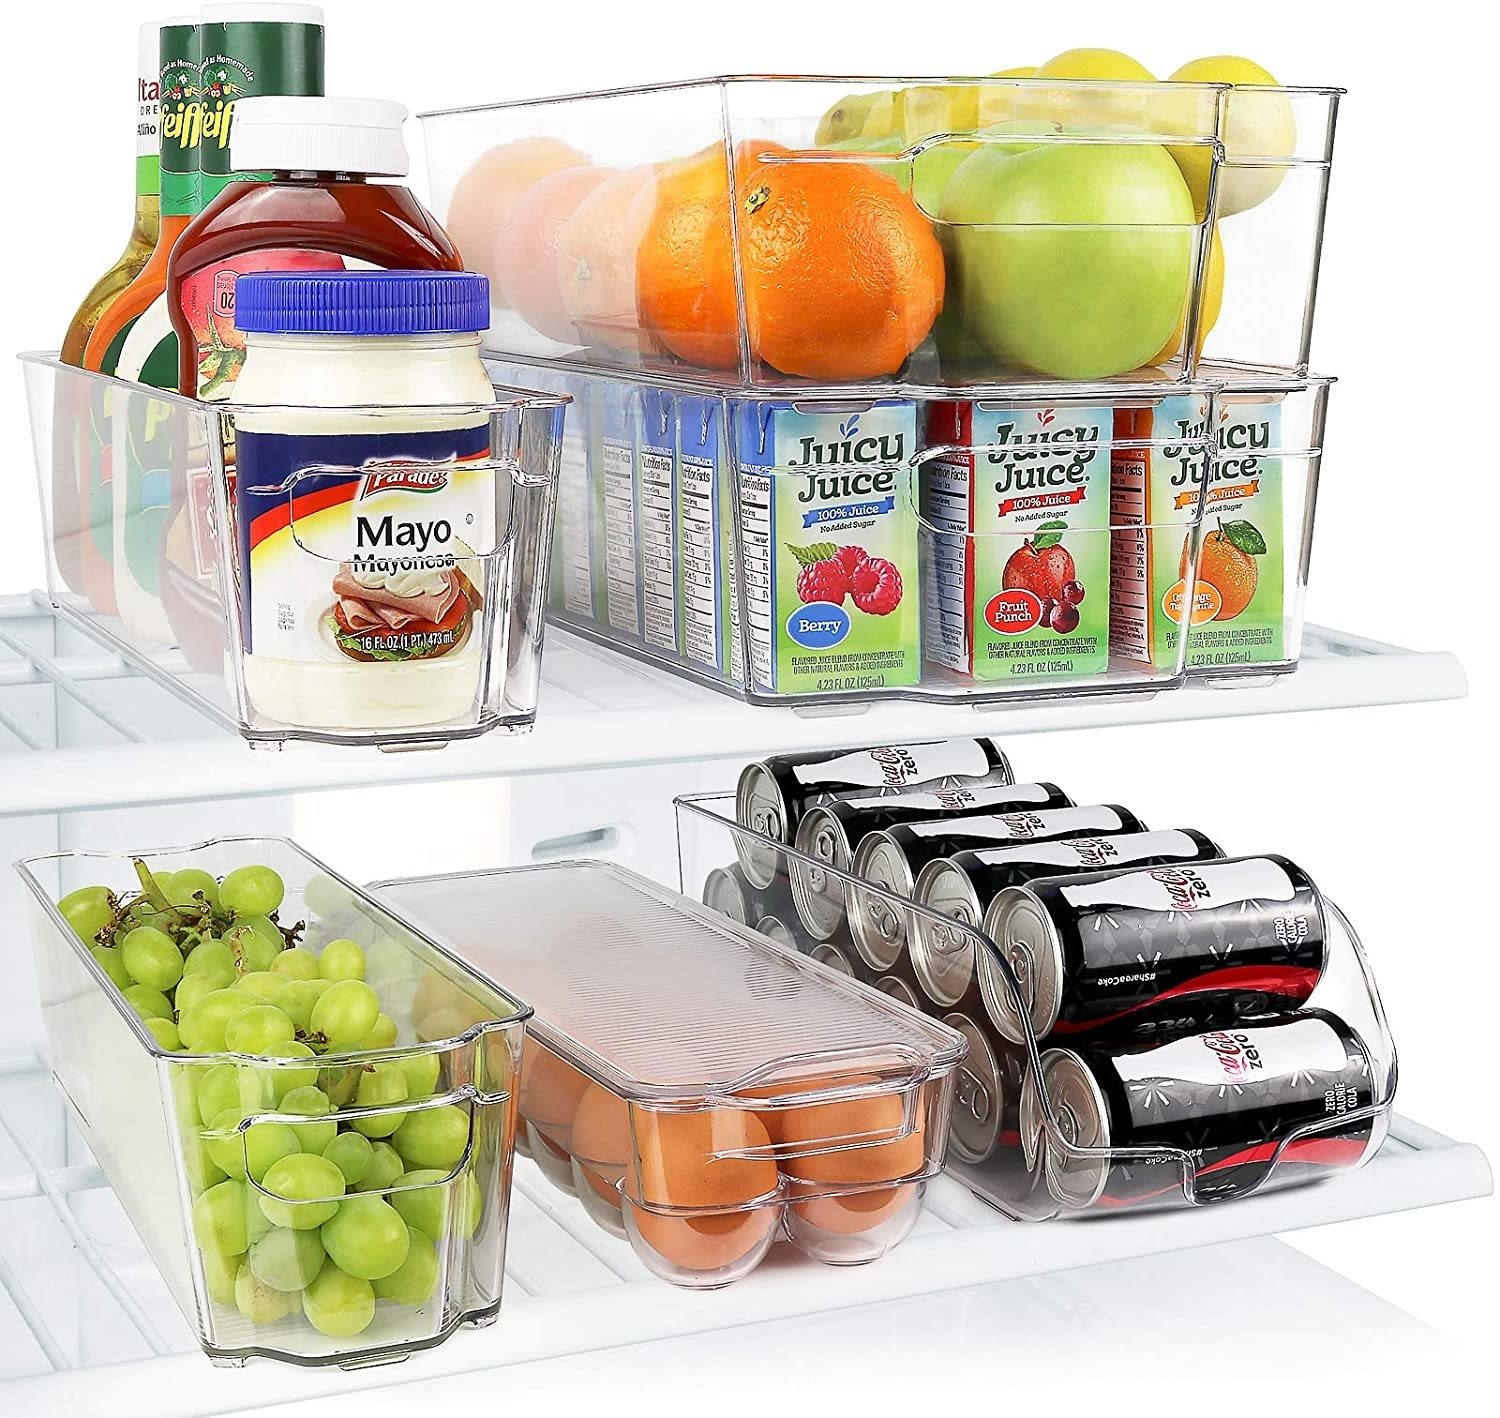 larger clear bins holding juice boxes and fruit; narrower bins holding condiments and grapes; egg bin, and soda bin